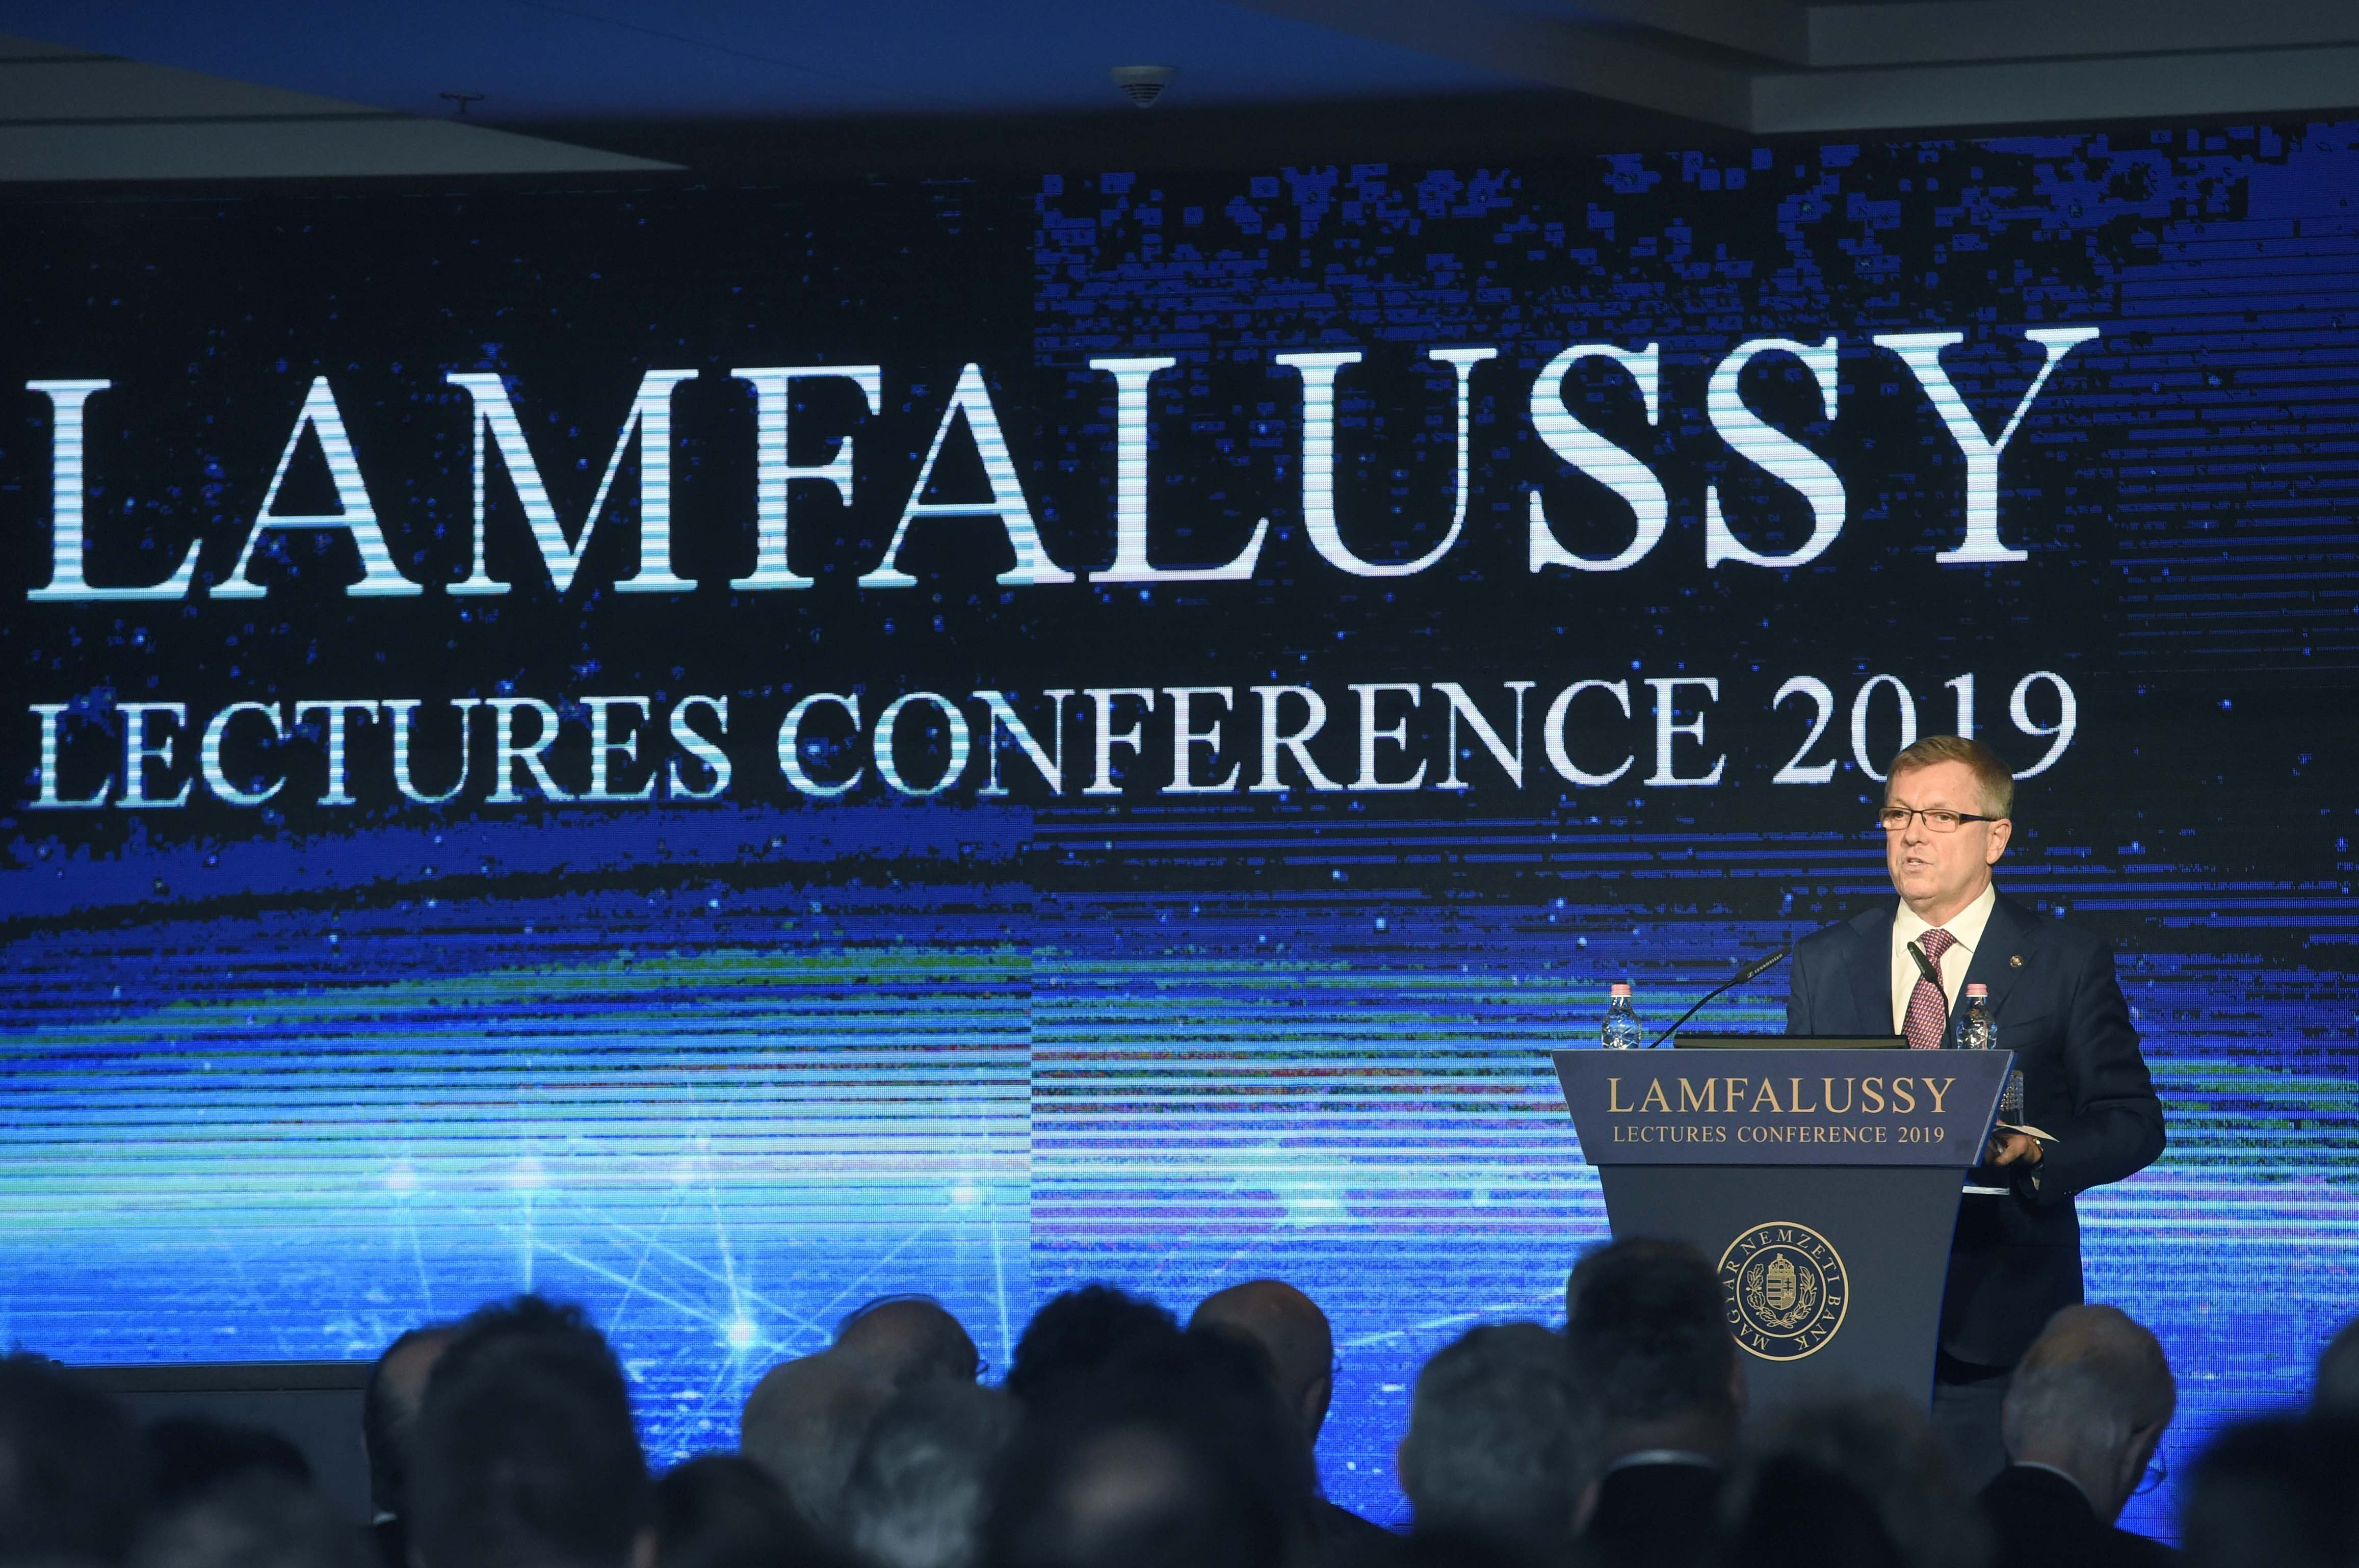 Lámfalussy Lectures